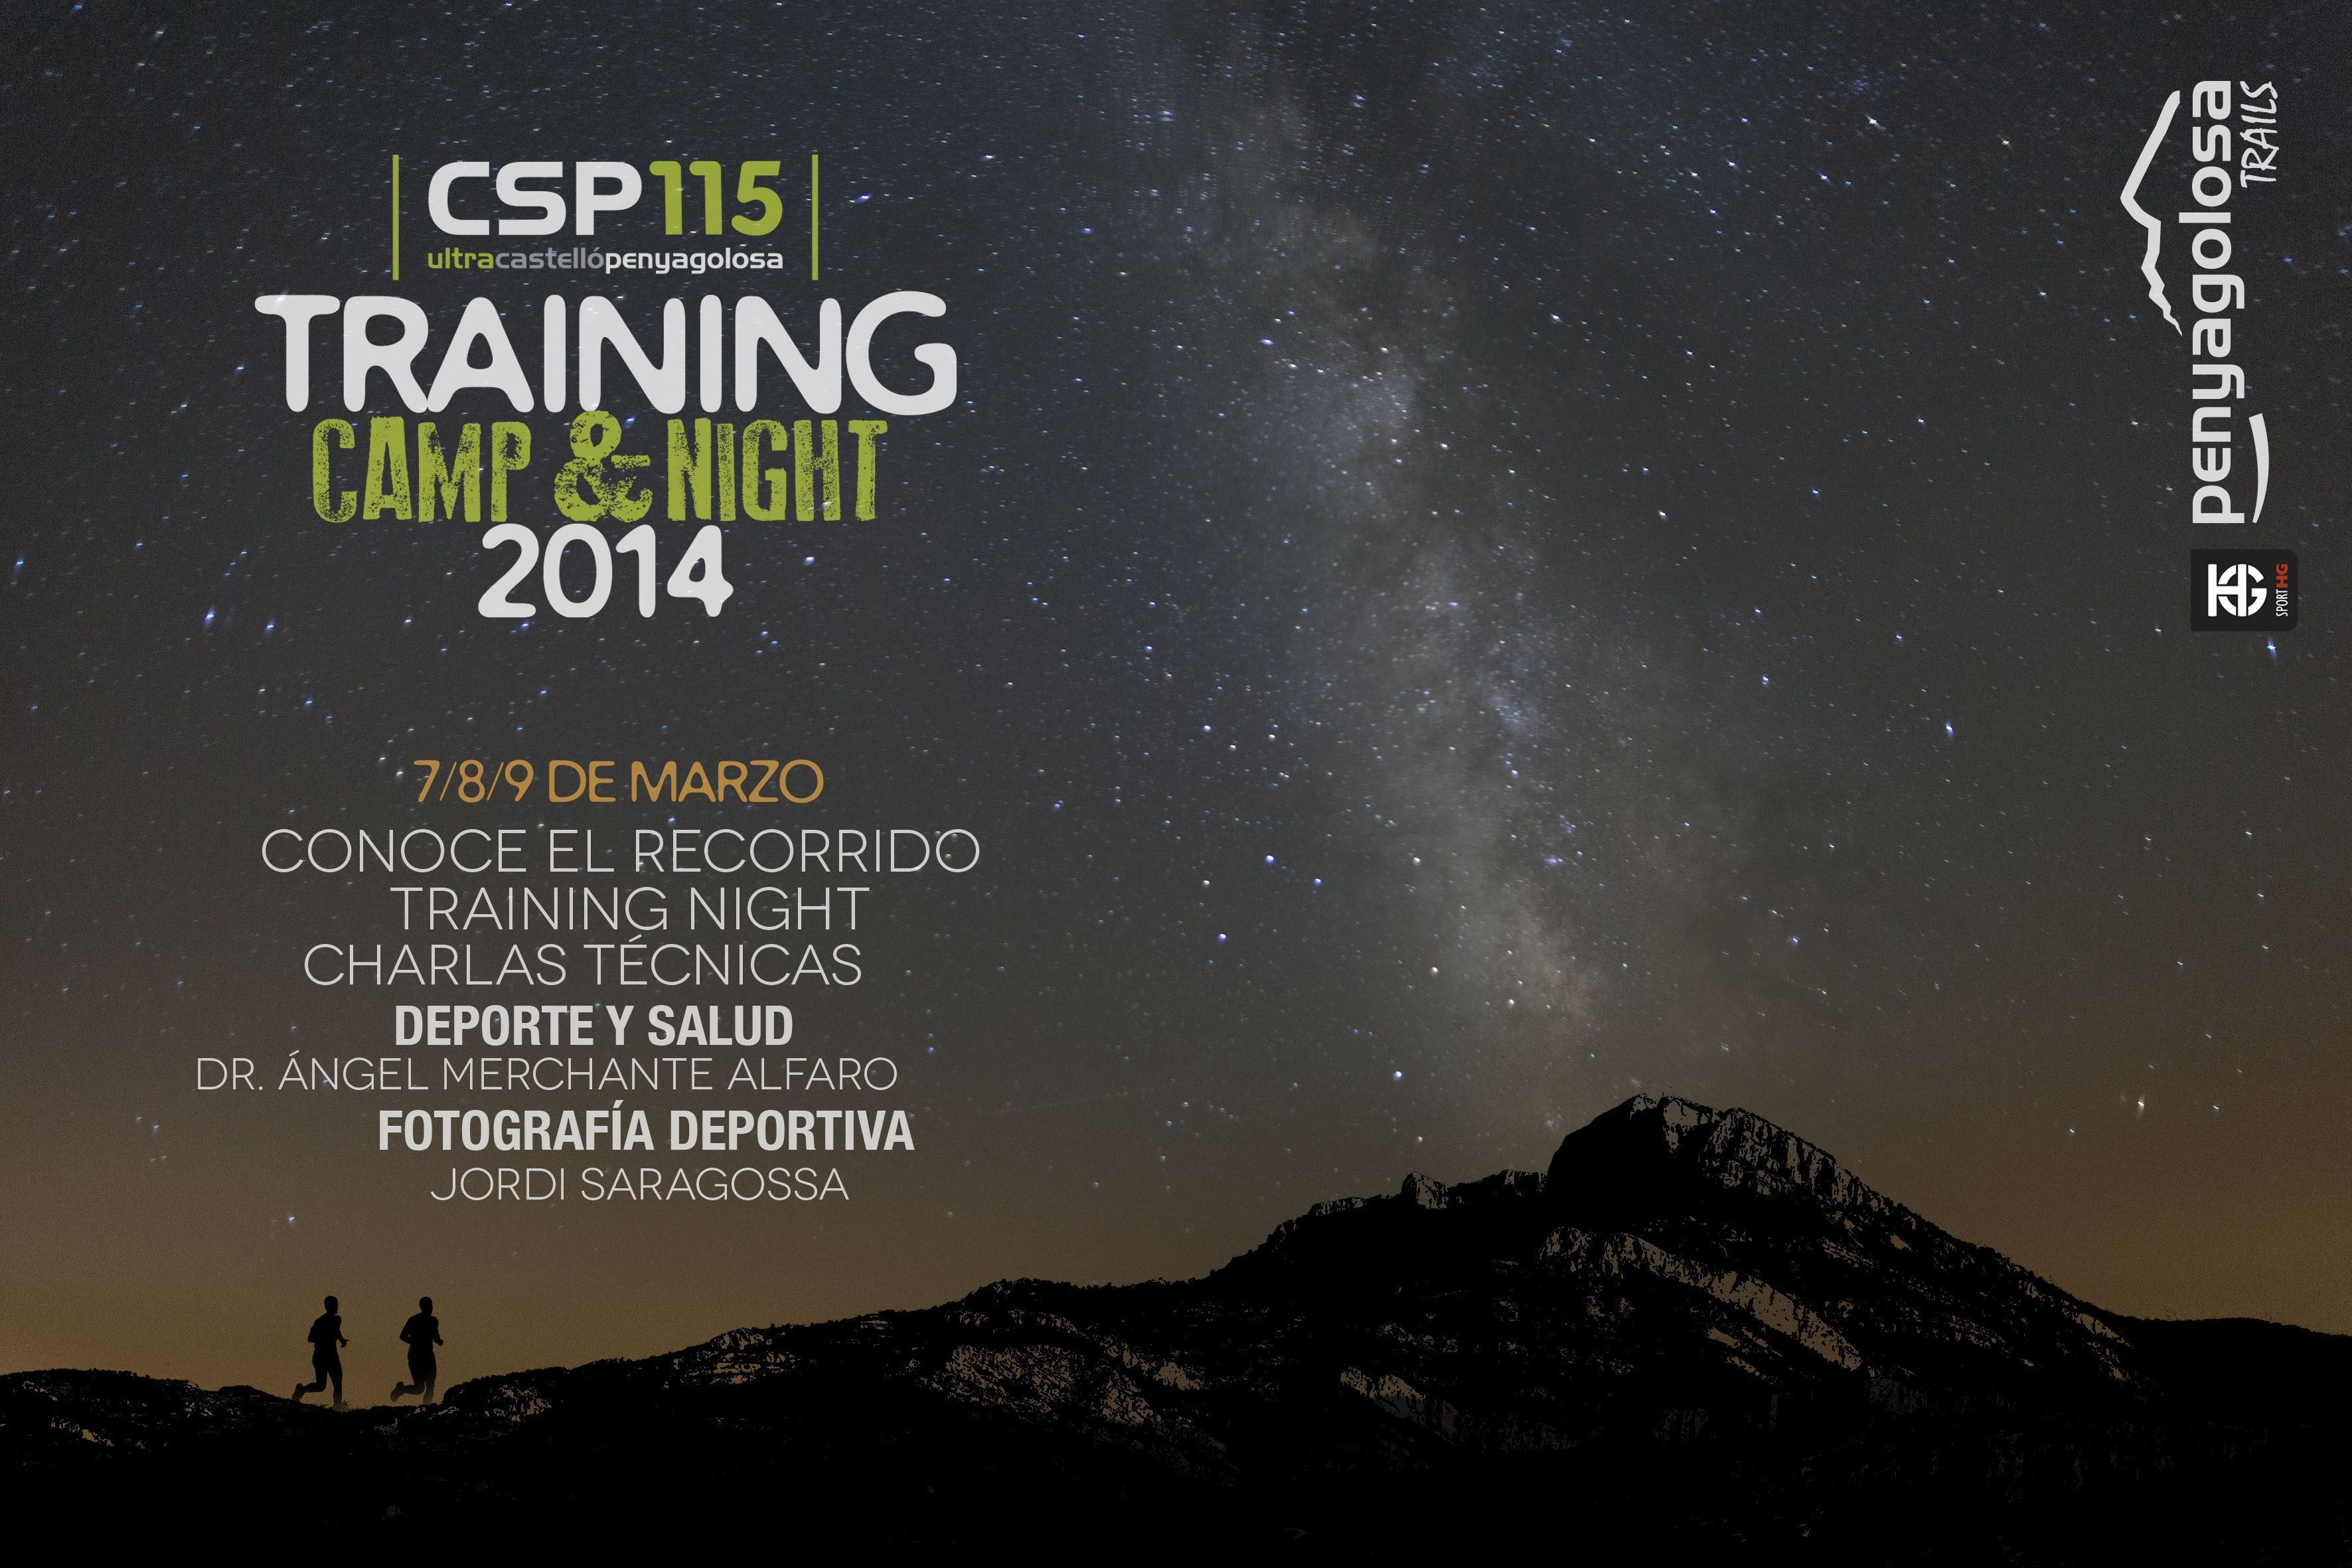 cartel_training2014_prensa_oka